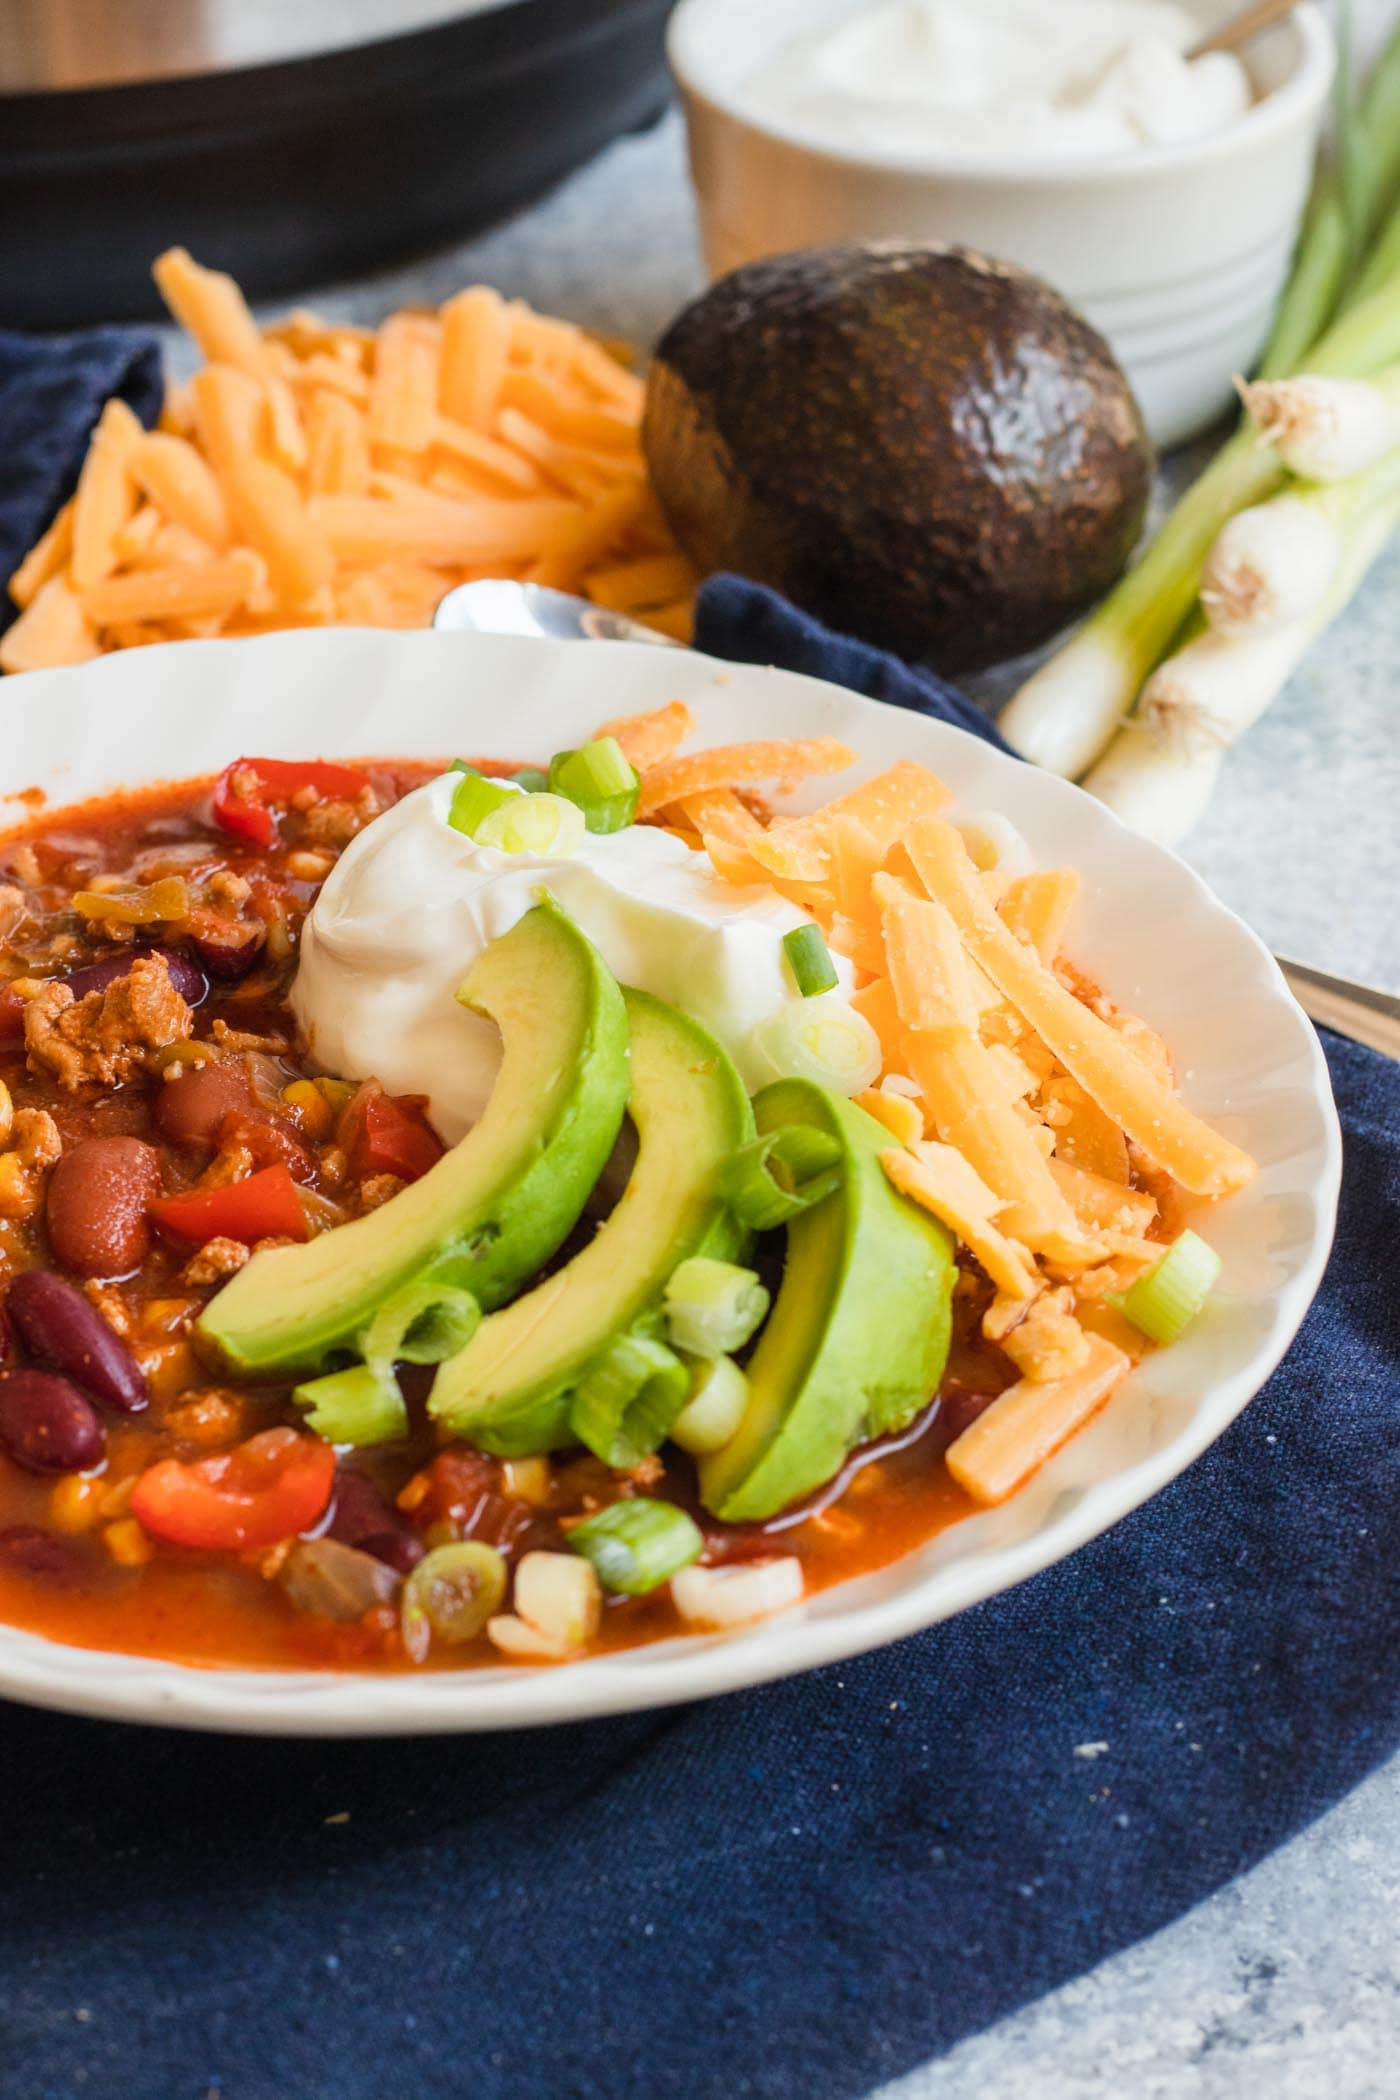 photo of the Best Easy Turkey Chili Recipe garnished with avocado, cheese and sour cream by top Houston lifestyle blogger Ashley Rose of Sugar & Cloth